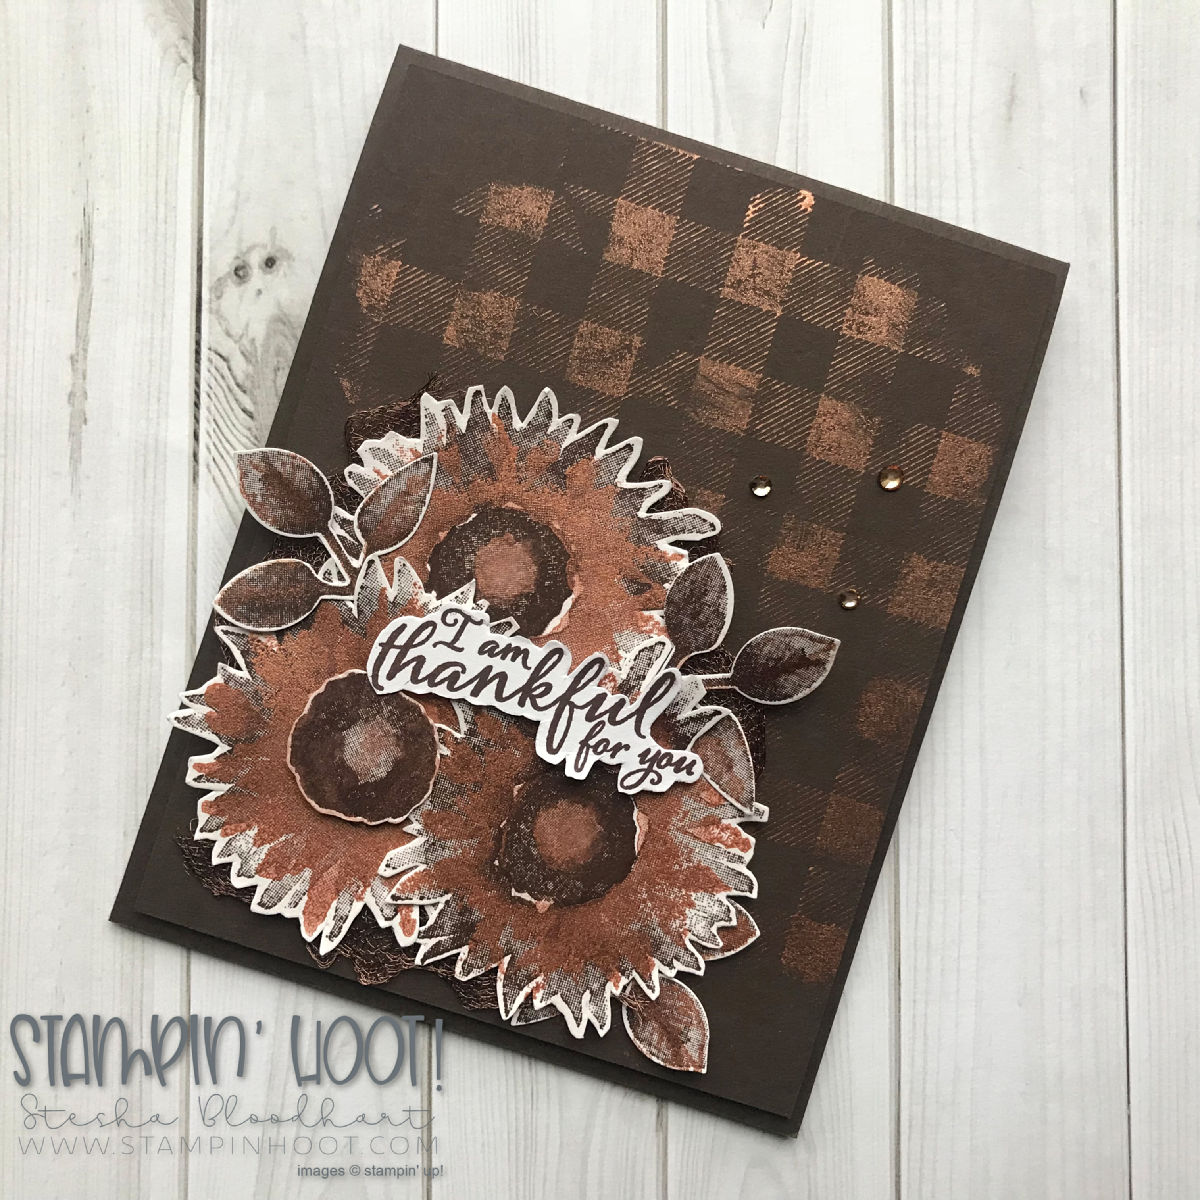 Painted Harvest Stamp Set by Stampin' Up! with Bright Copper Shimmer Paint. Fall card by Stesha Bloodhart, Stampin' Hoot! #steshabloodhart #stampinhoot